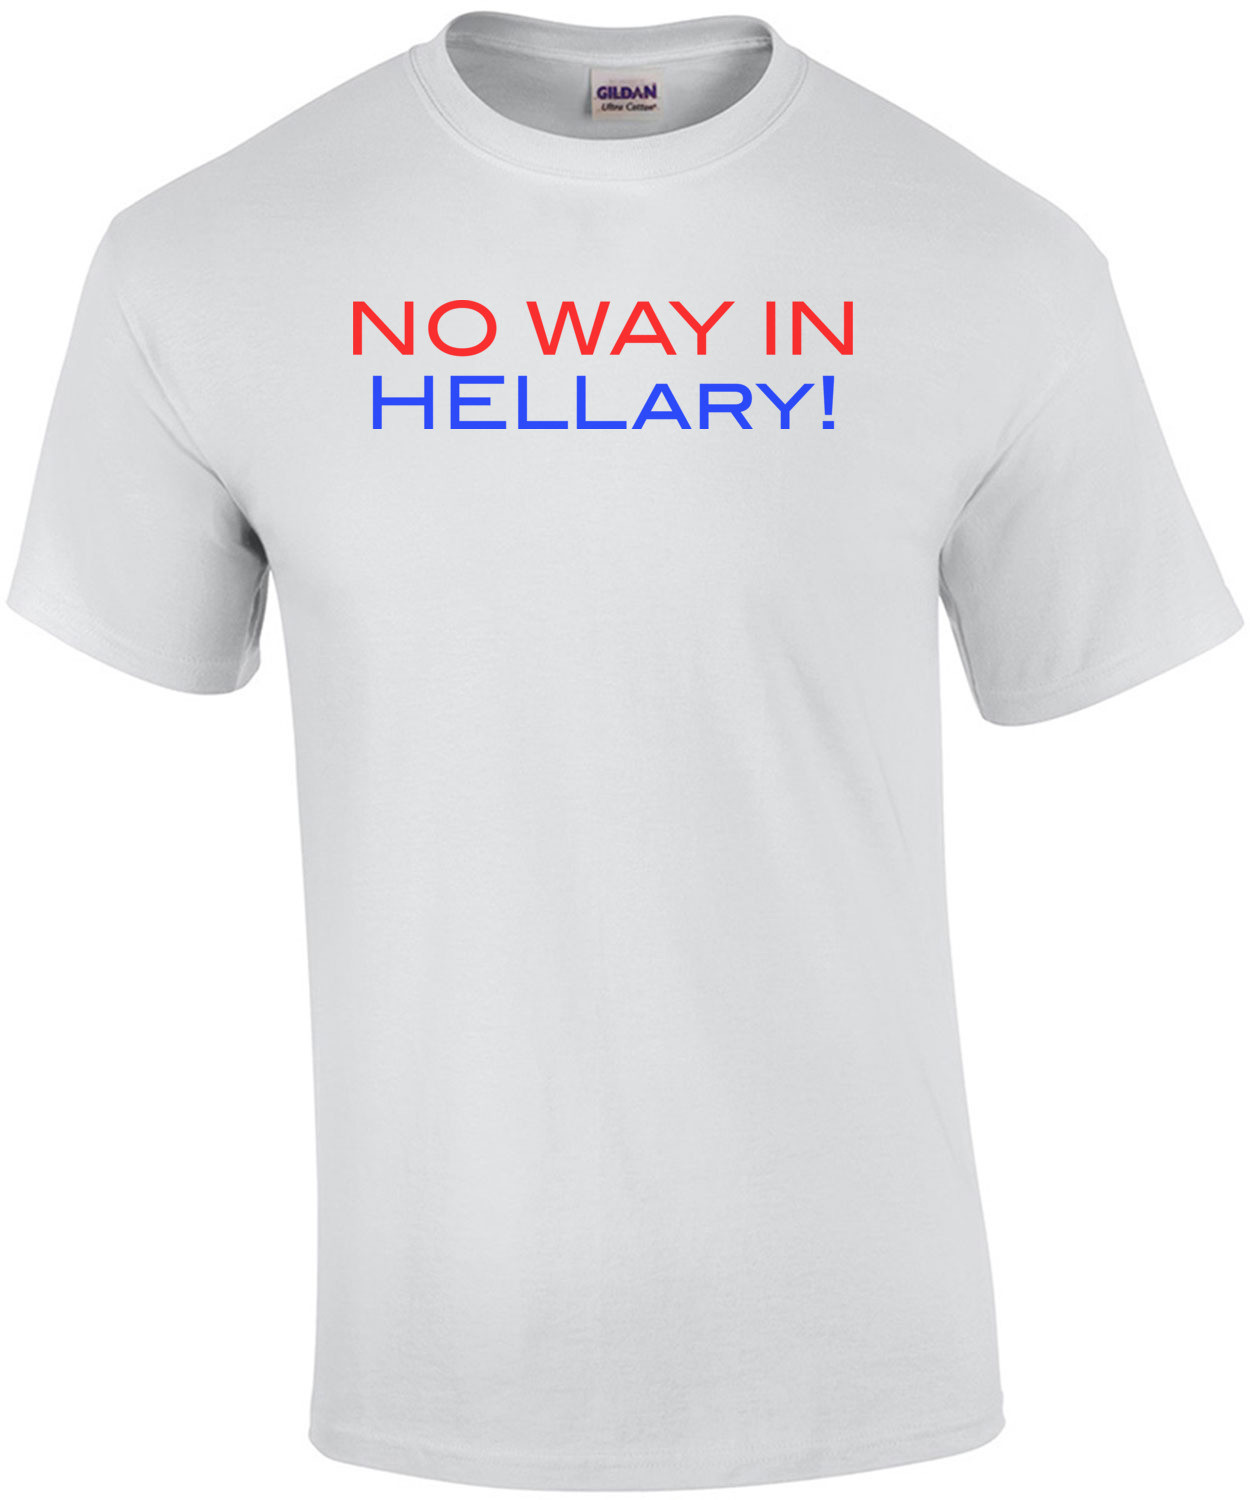 No Way In Hellary T-Shirt